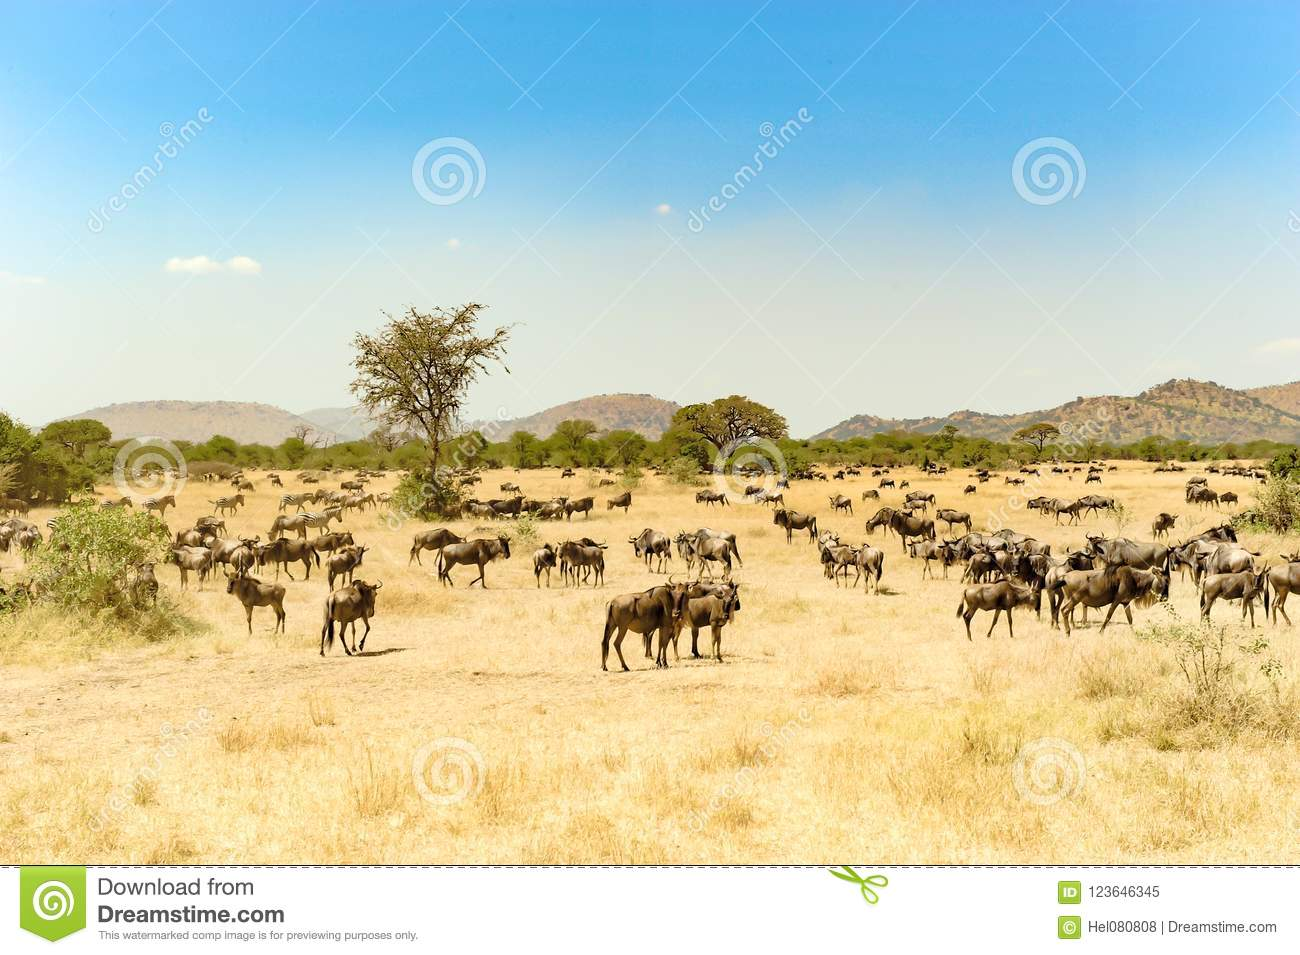 Wildebeests at great migration time in Serengeti, Africa, hundrets of wildebeests together